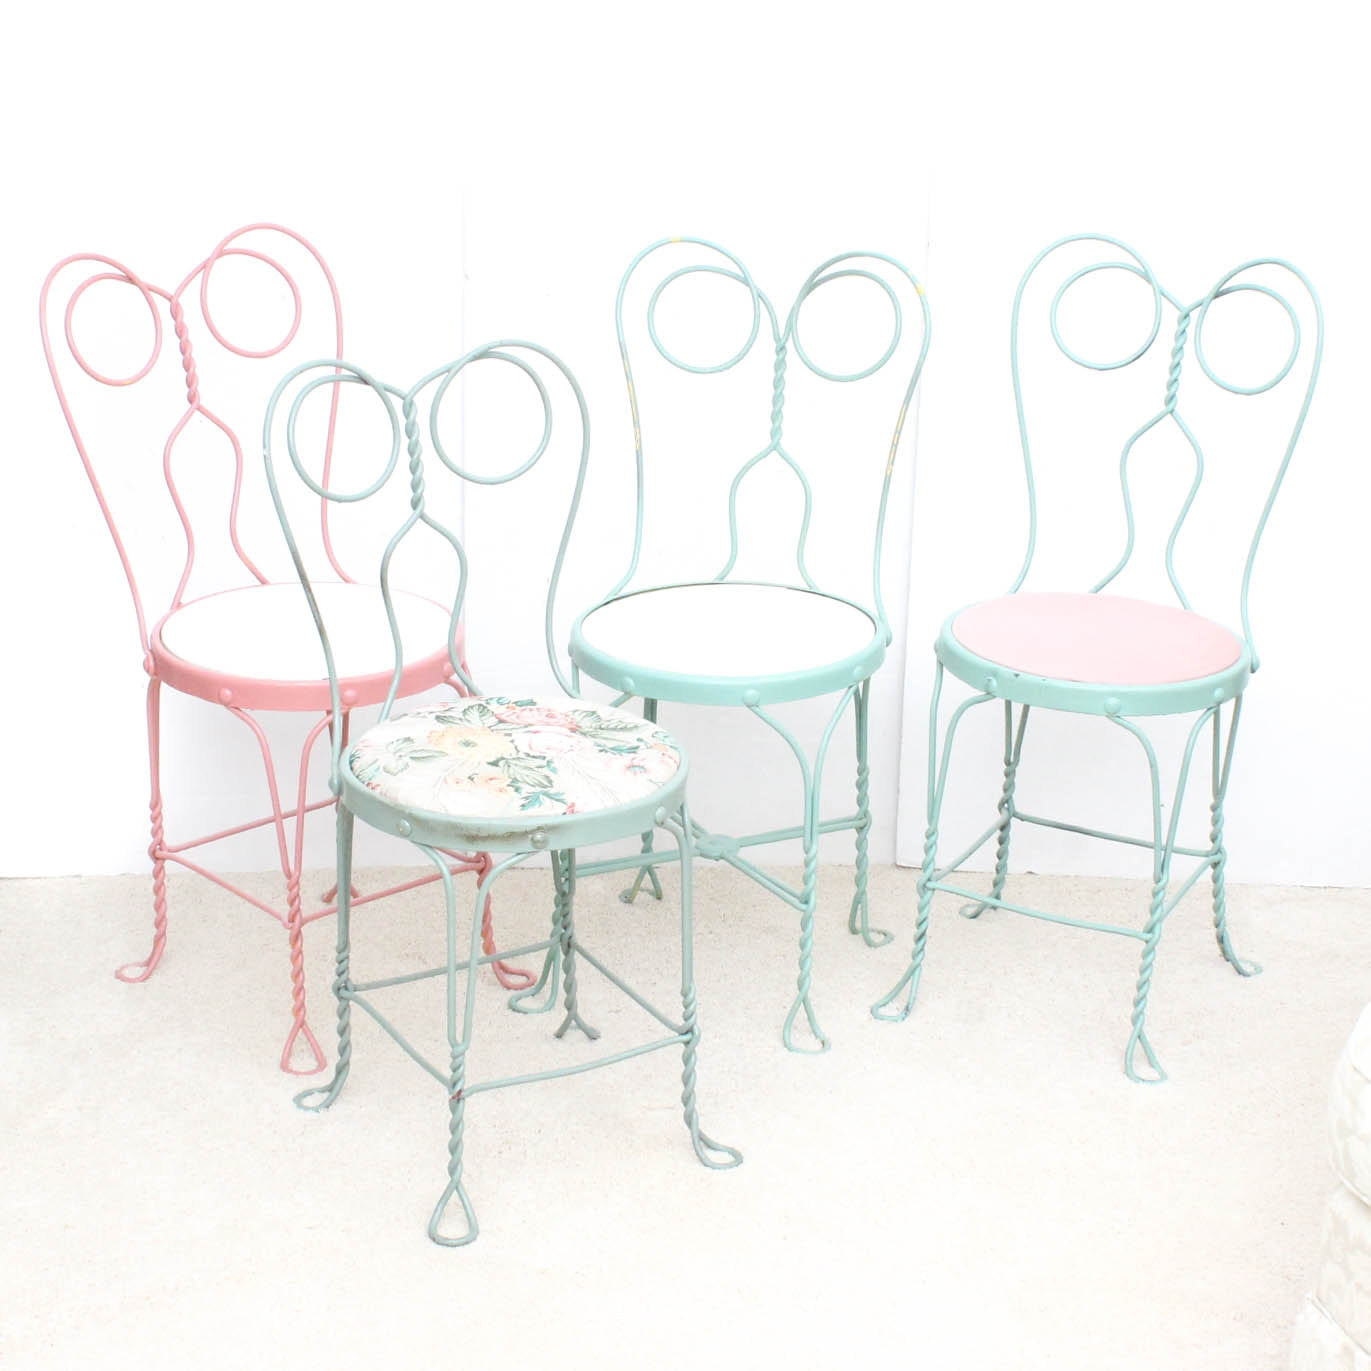 Four Wrought Metal Ice Cream Parlor Chairs